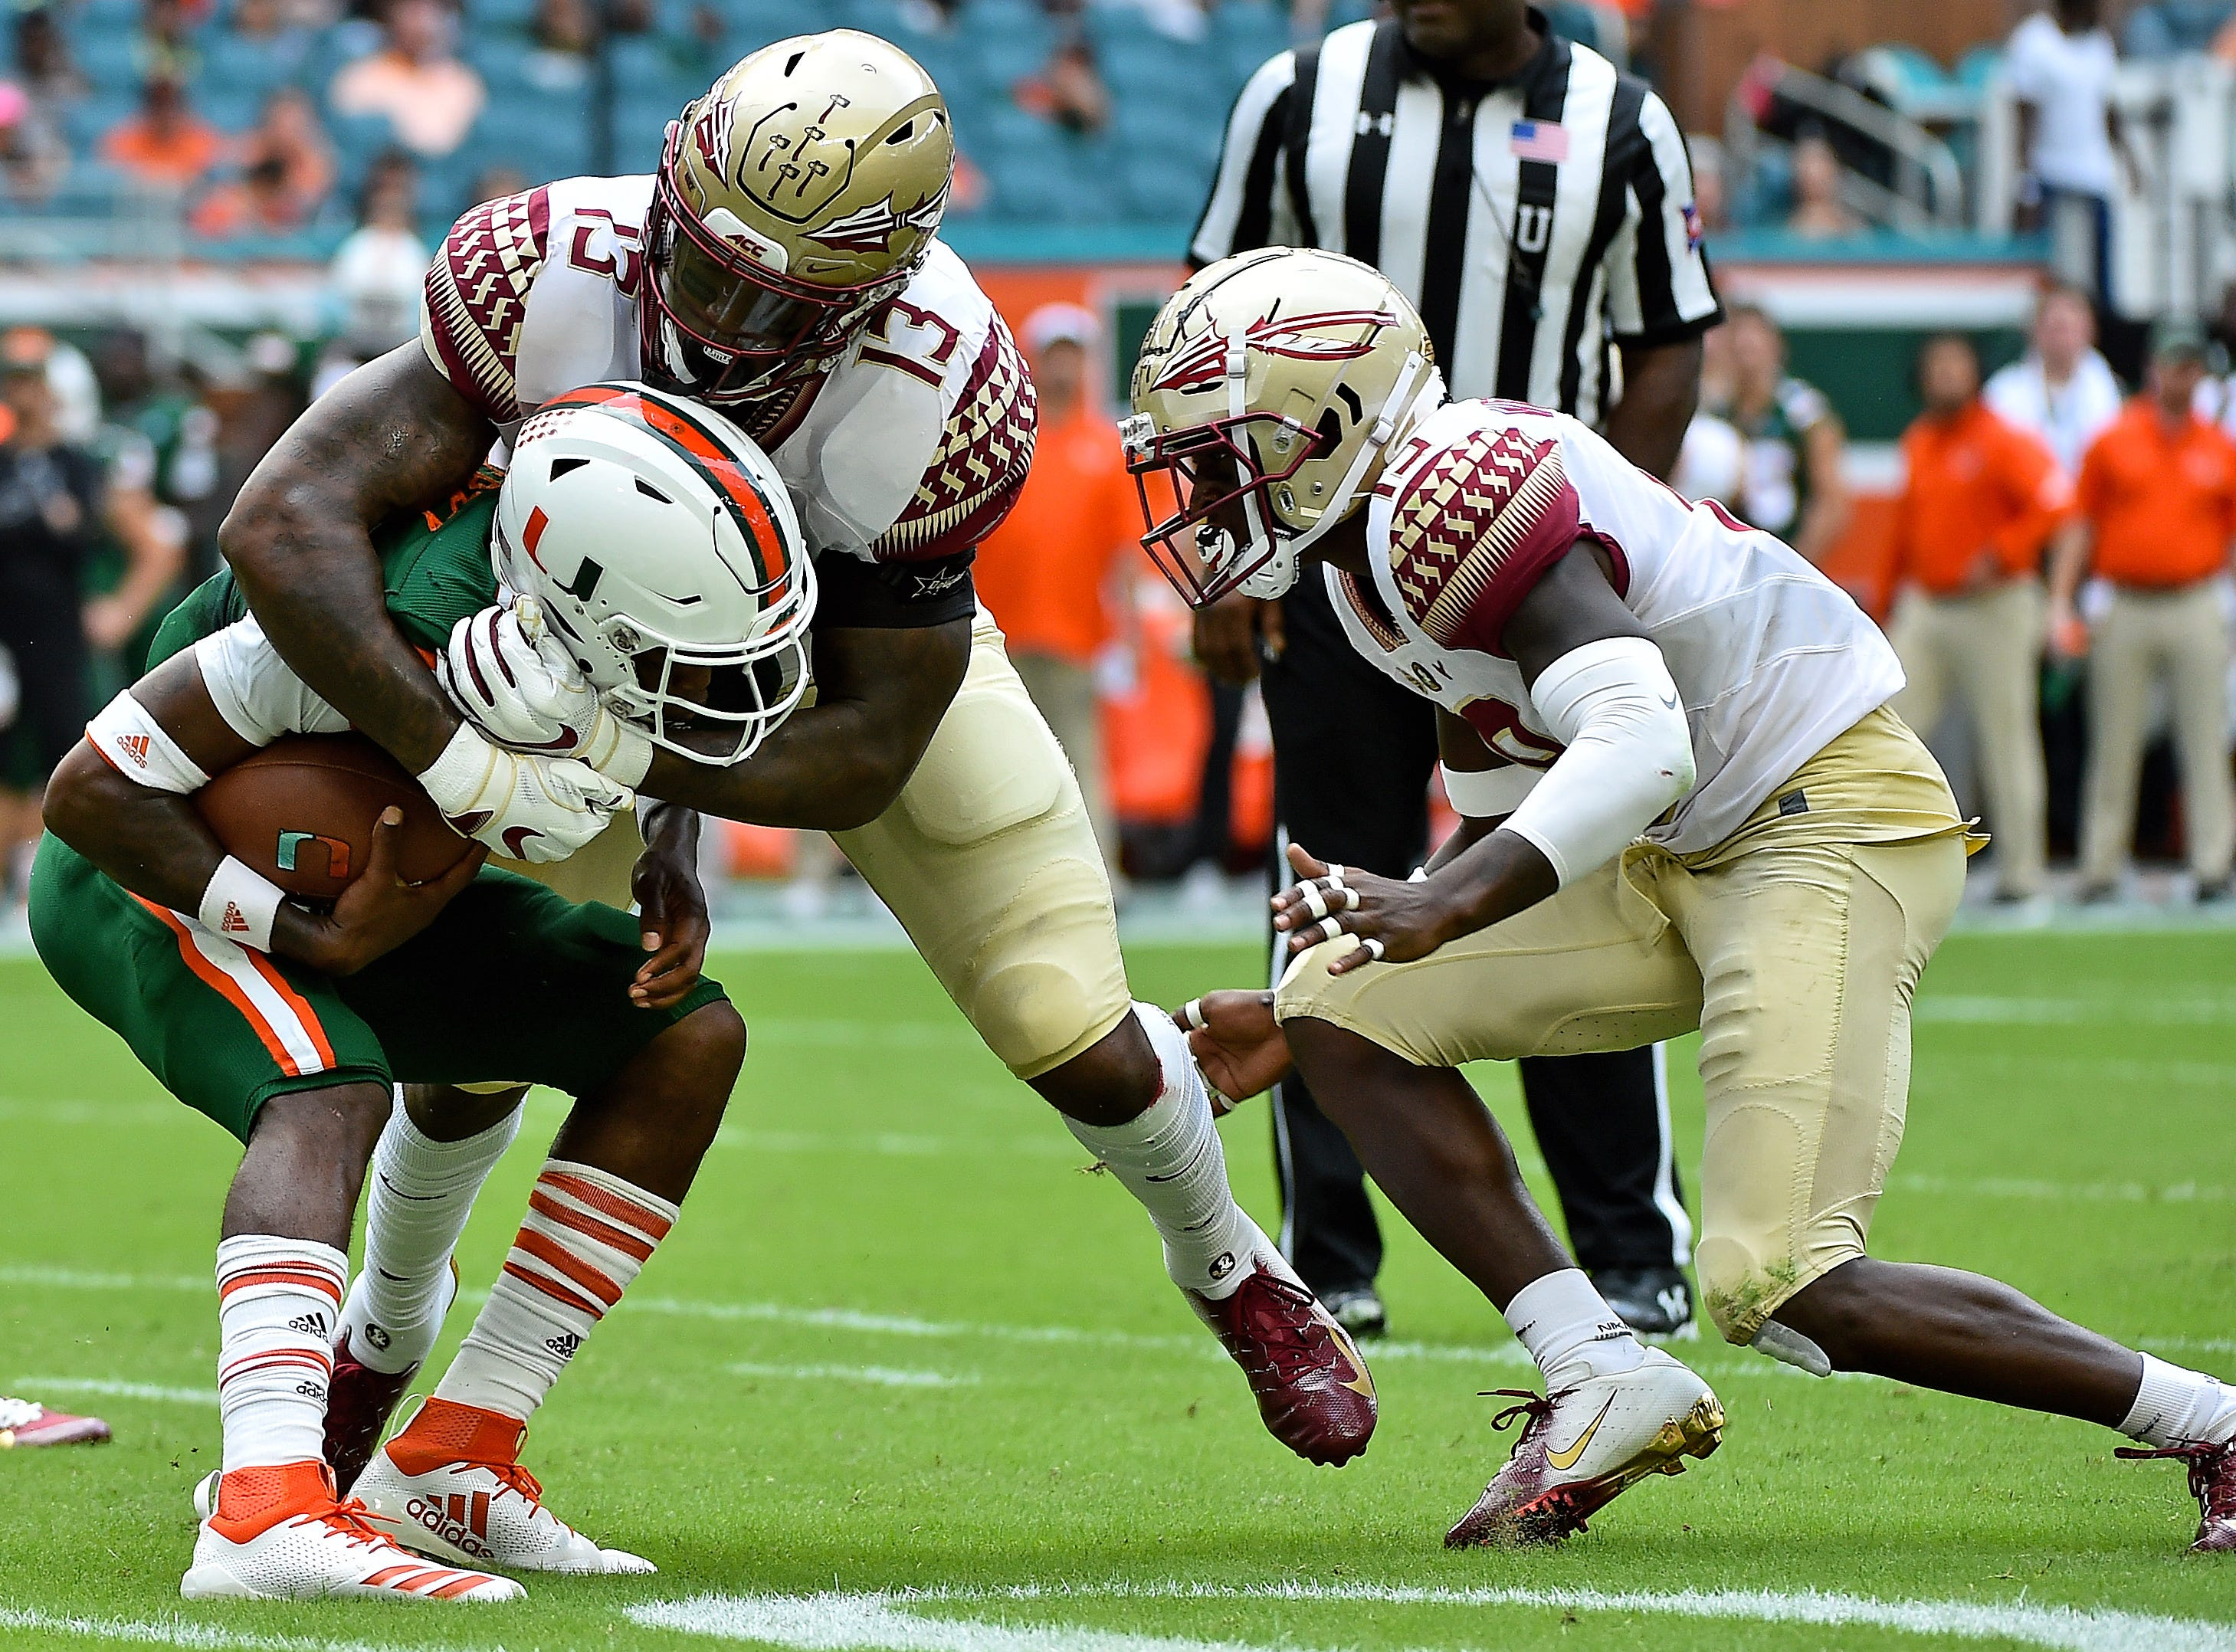 Oct 6, 2018; Miami Gardens, FL, USA; Florida State Seminoles defensive end Joshua Kaindoh (13) tackles Miami Hurricanes quarterback N'Kosi Perry (5) during the first half at Hard Rock Stadium. Mandatory Credit: Jasen Vinlove-USA TODAY Sports